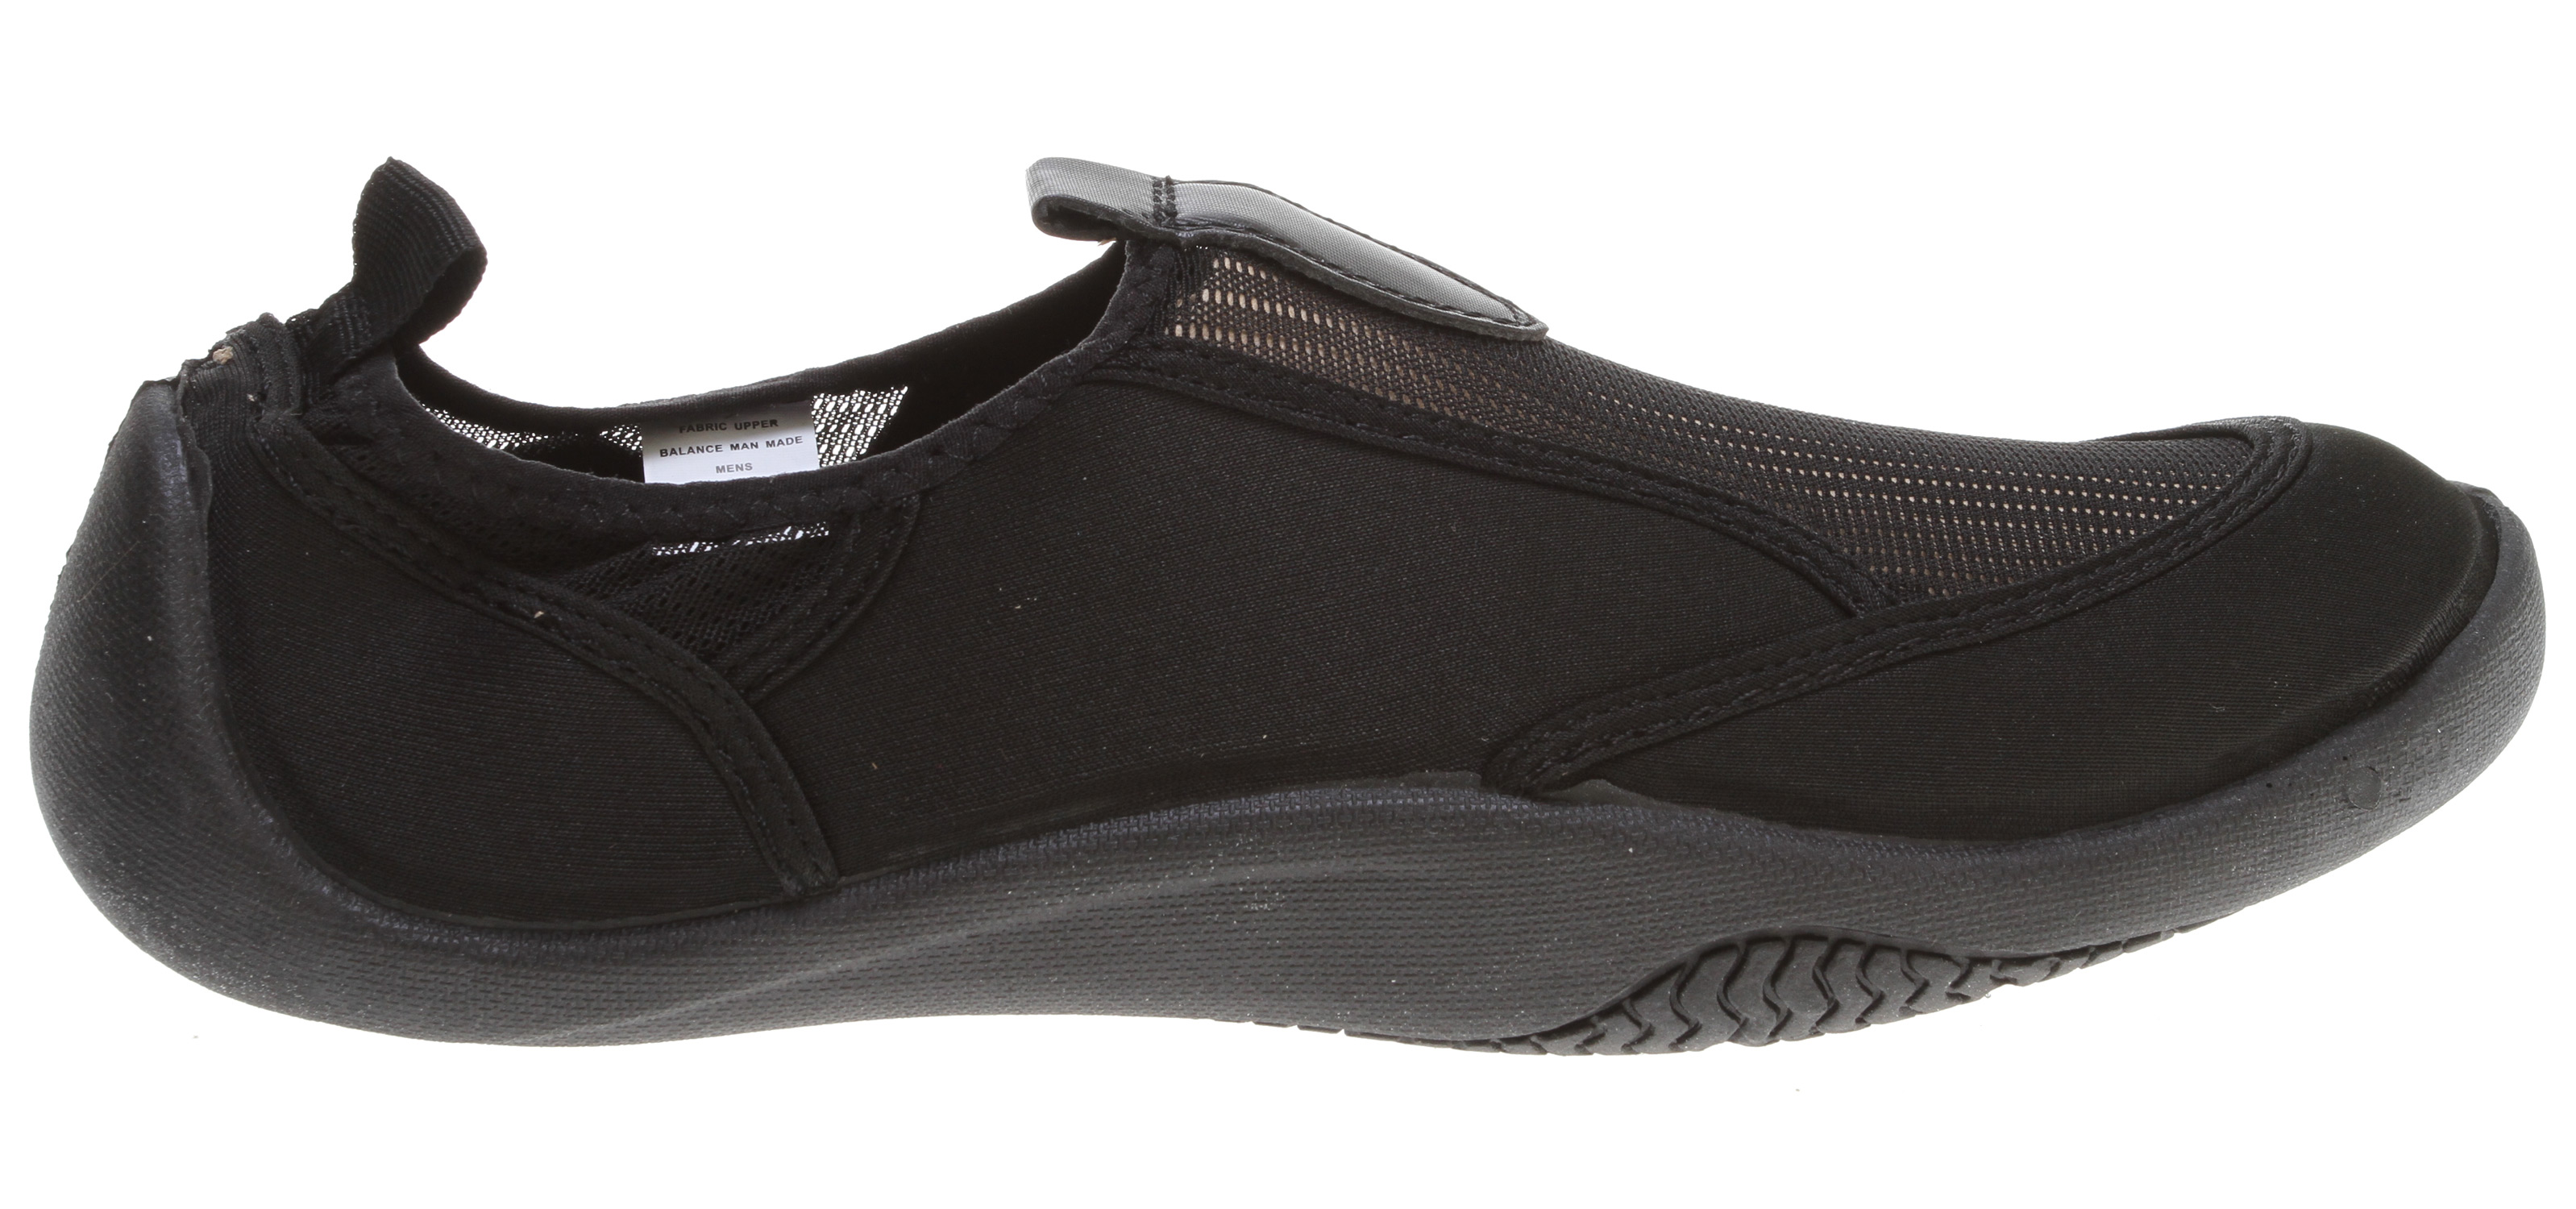 Inexpensive water shoes with a slip on fit. Produced with innovative methods using recycled materials for high quality footwear. Rafters also takes great care the environment. Rafters are durable, high-quality footwear at an affordable price.Key Features of the Rafters Orlando Water Shoes: Stretchy nylon fabric upper Rubber sole Available in whole sizes only, half sizes please order the next size up - $9.95